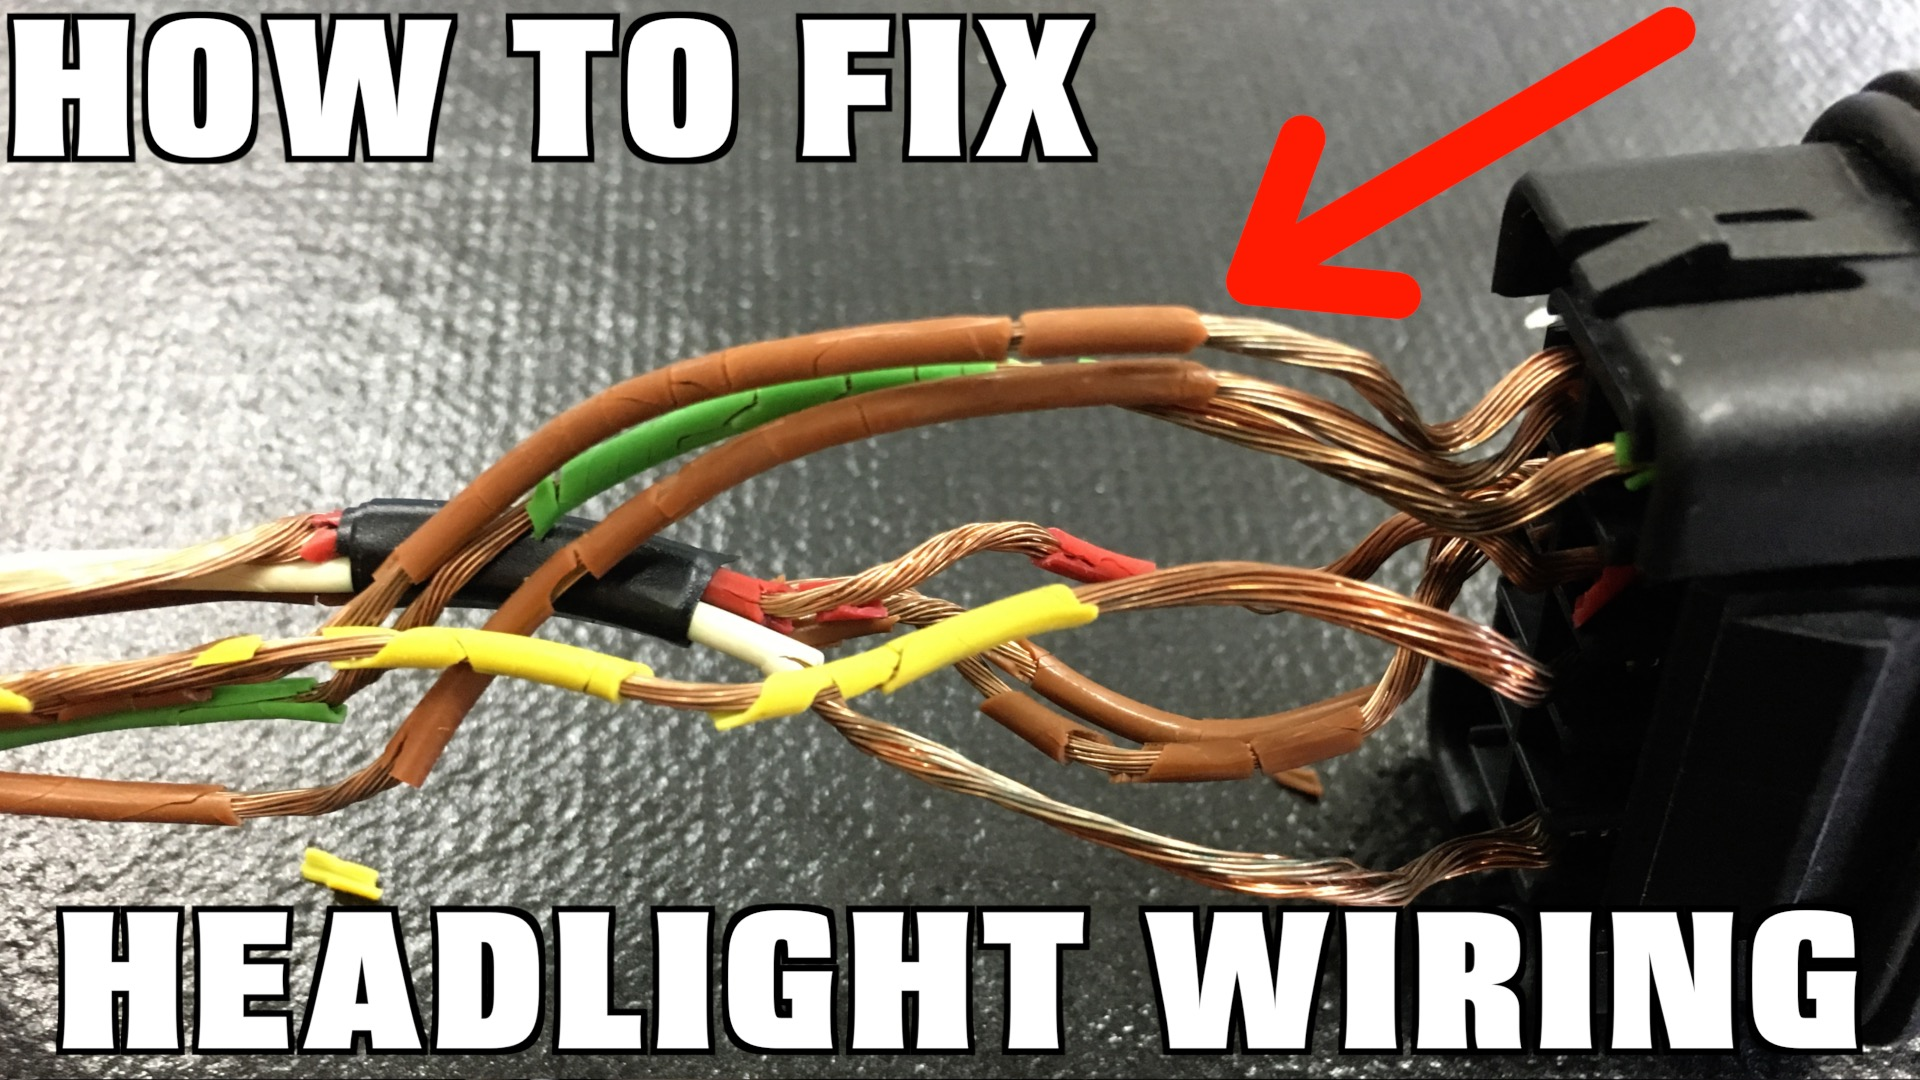 How To Replace Headlight Wiring Humble Mechanic